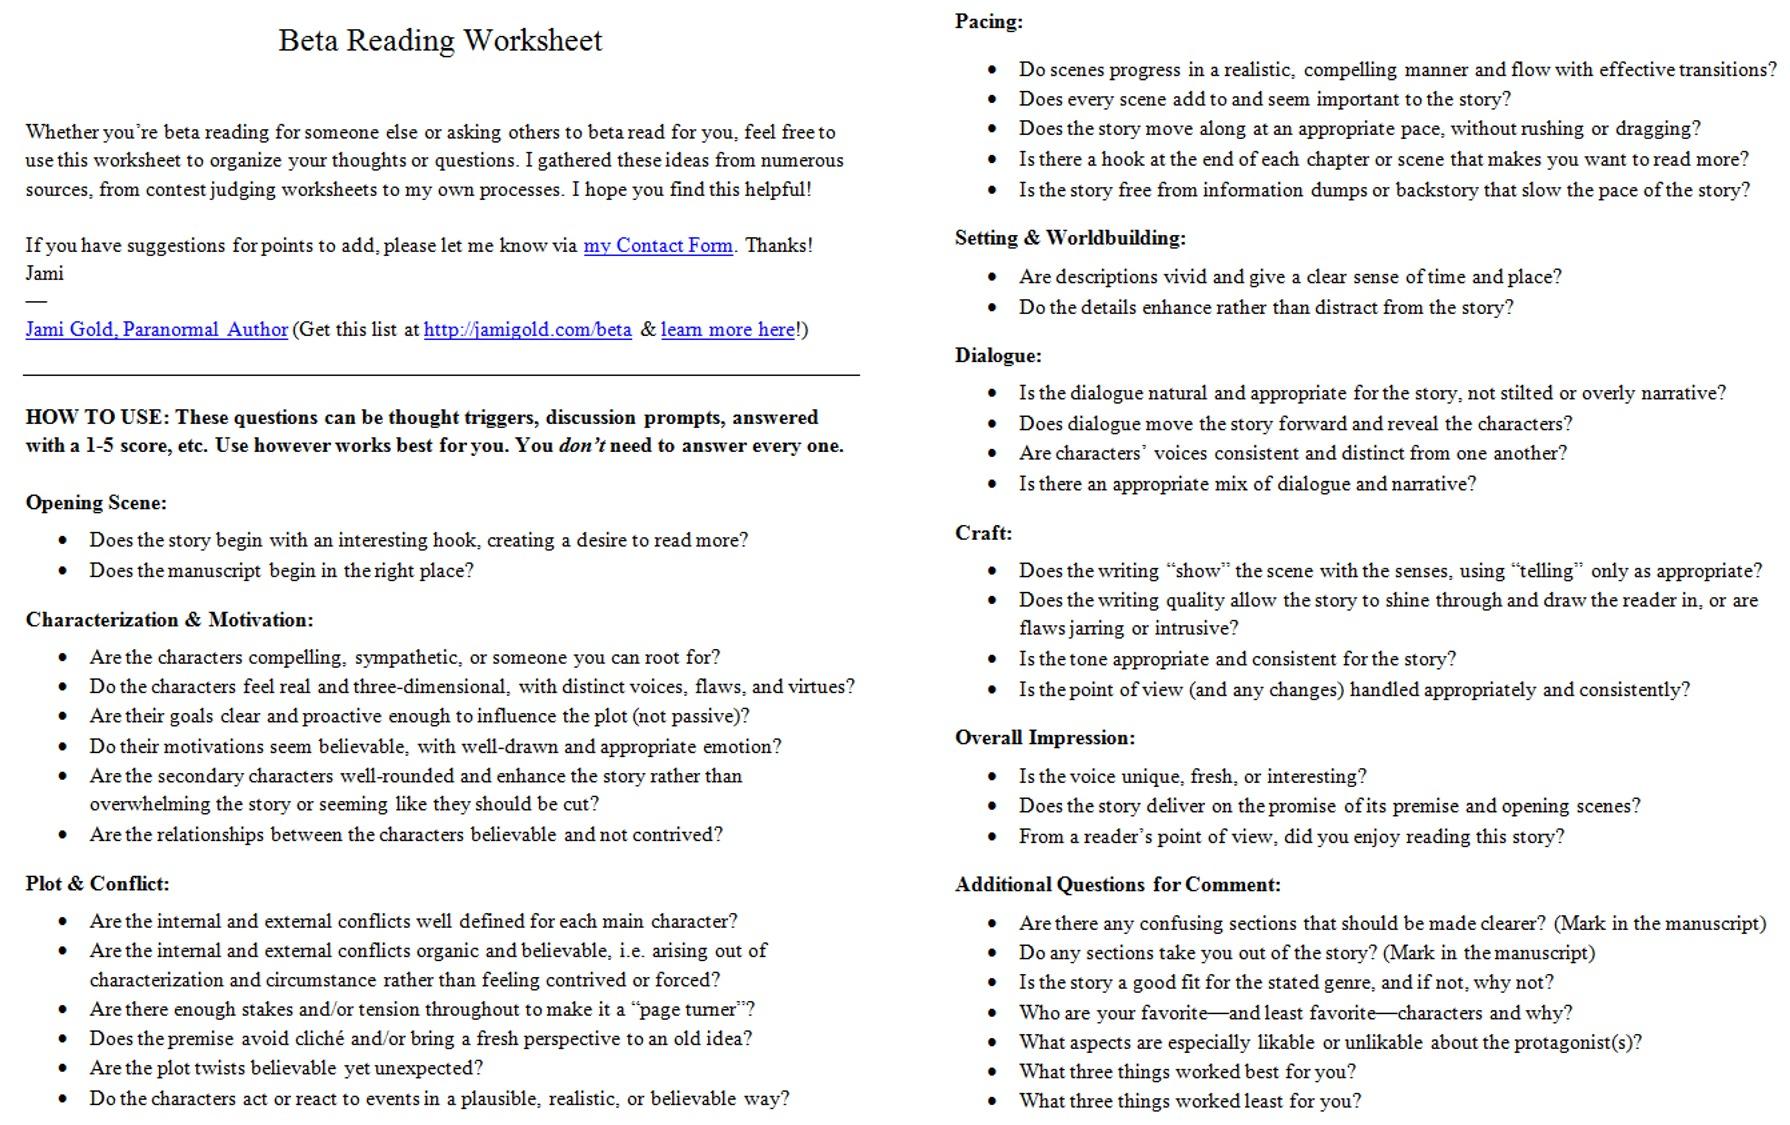 Aldiablosus  Pleasant Worksheets For Writers  Jami Gold Paranormal Author With Licious Screen Shot Of The Twopage Beta Reading Worksheet With Charming Endangered Animals For Kids Worksheets Also Speaking And Listening Worksheets In Addition Moles Worksheets And Percentage To Decimal Worksheet As Well As D Pythagoras Worksheet Additionally Halloween Esl Worksheet From Jamigoldcom With Aldiablosus  Licious Worksheets For Writers  Jami Gold Paranormal Author With Charming Screen Shot Of The Twopage Beta Reading Worksheet And Pleasant Endangered Animals For Kids Worksheets Also Speaking And Listening Worksheets In Addition Moles Worksheets From Jamigoldcom